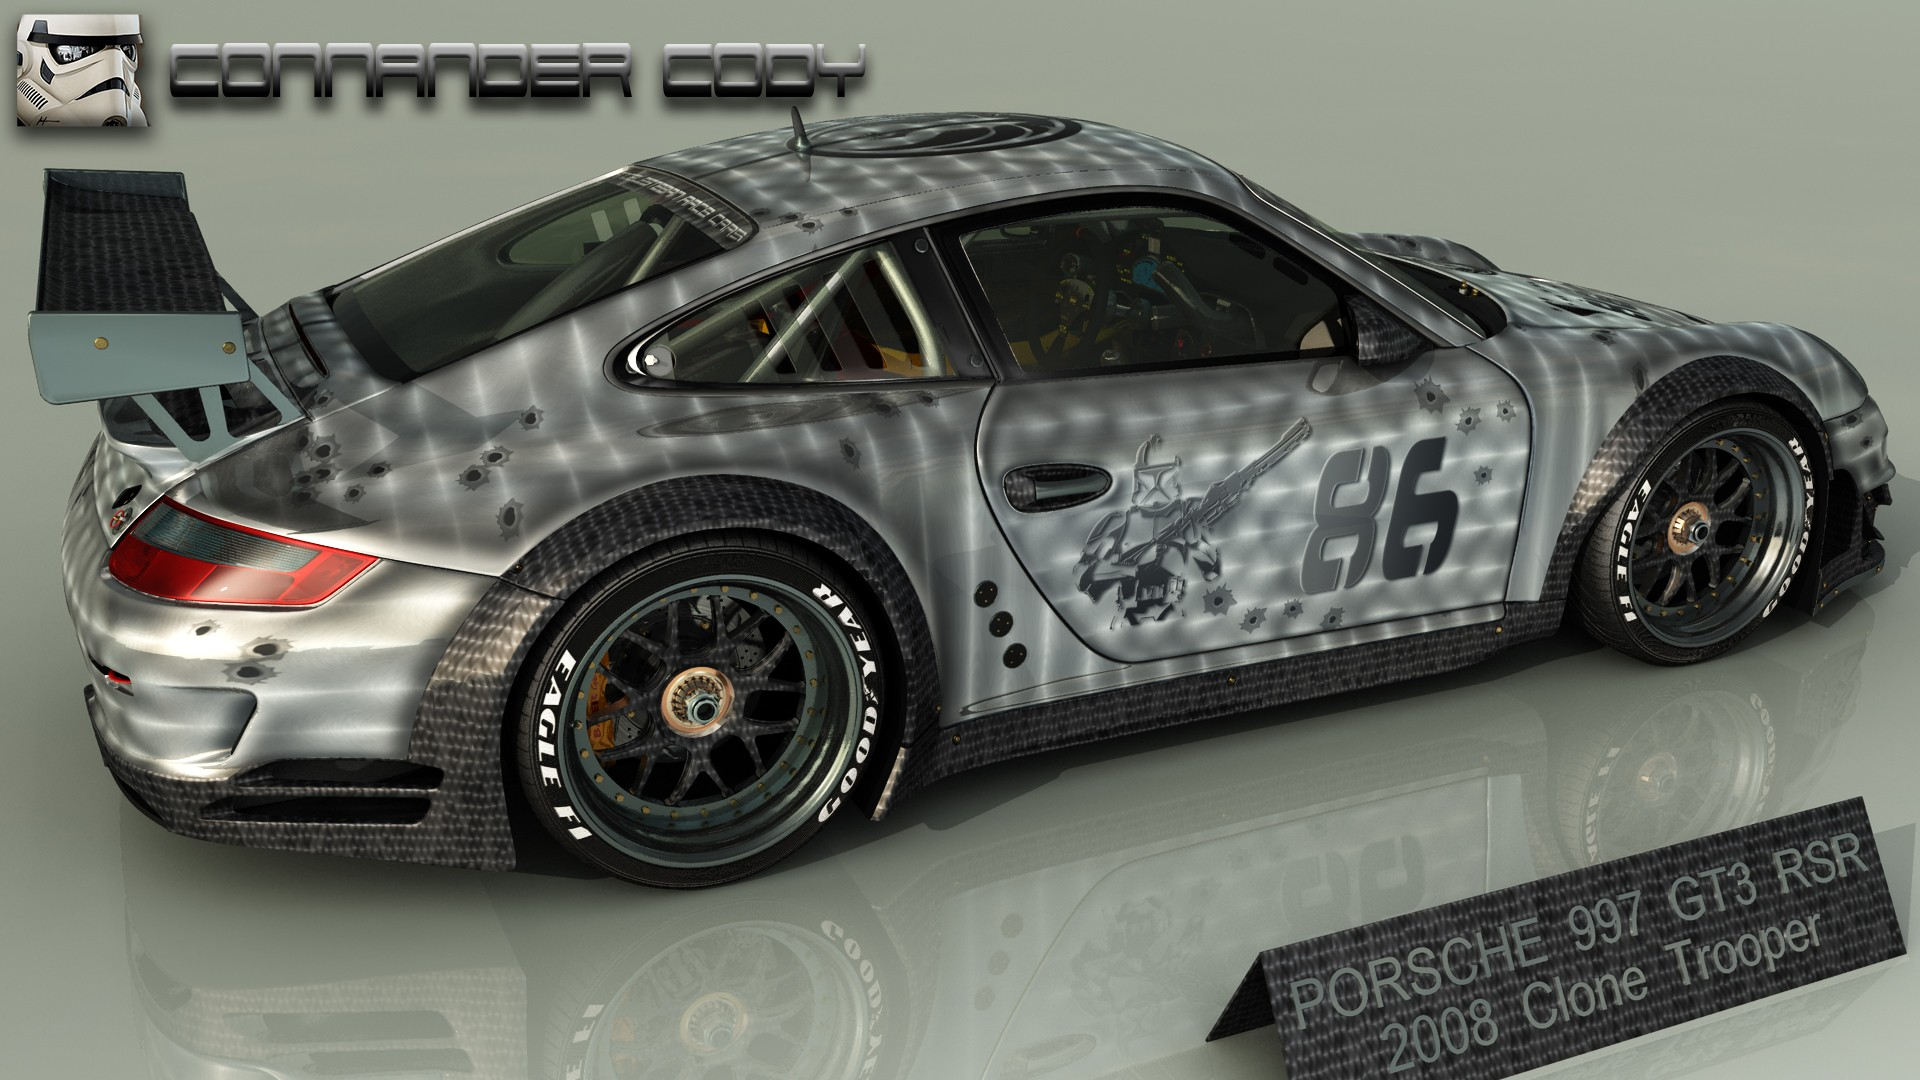 PORSCHE GTR3 TROOPER-P2 par angelesteban